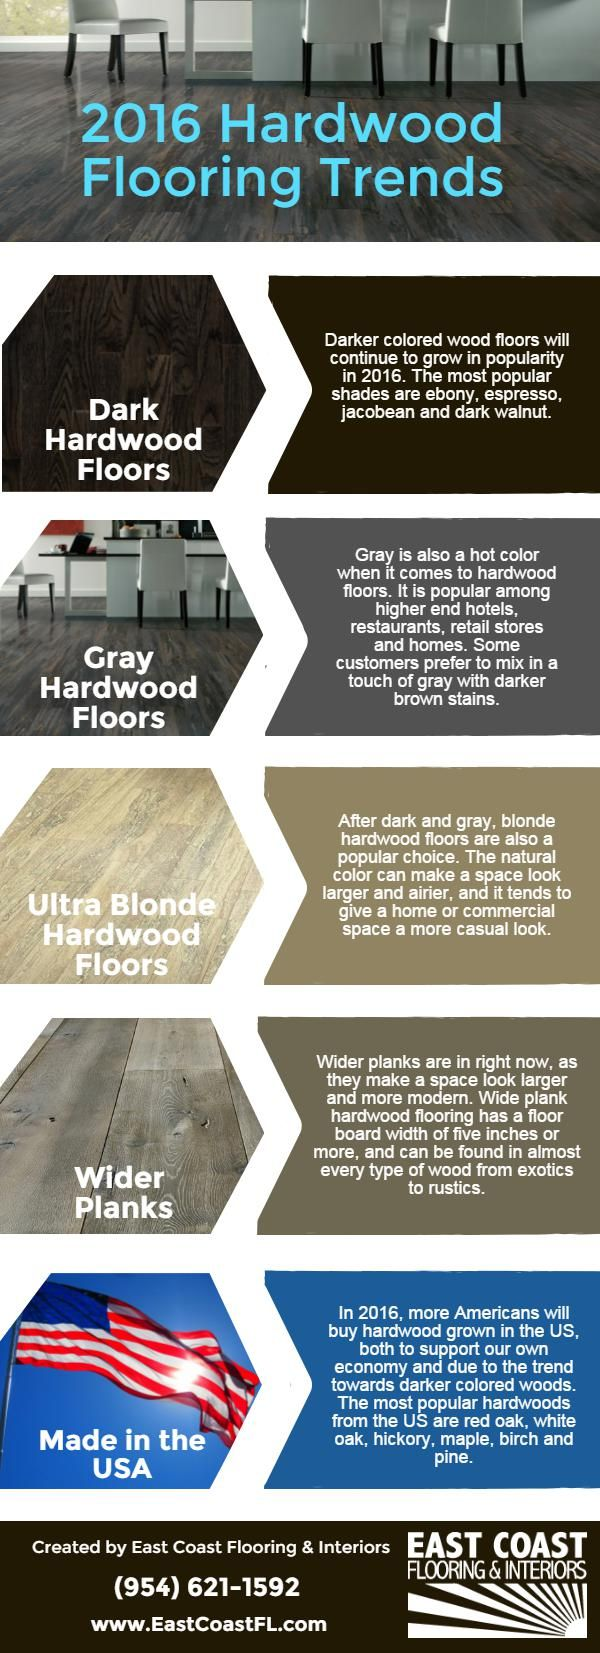 2016 Hardwood Flooring Trends (Infographic) from East Coast Flooring, a premier flooring installation company